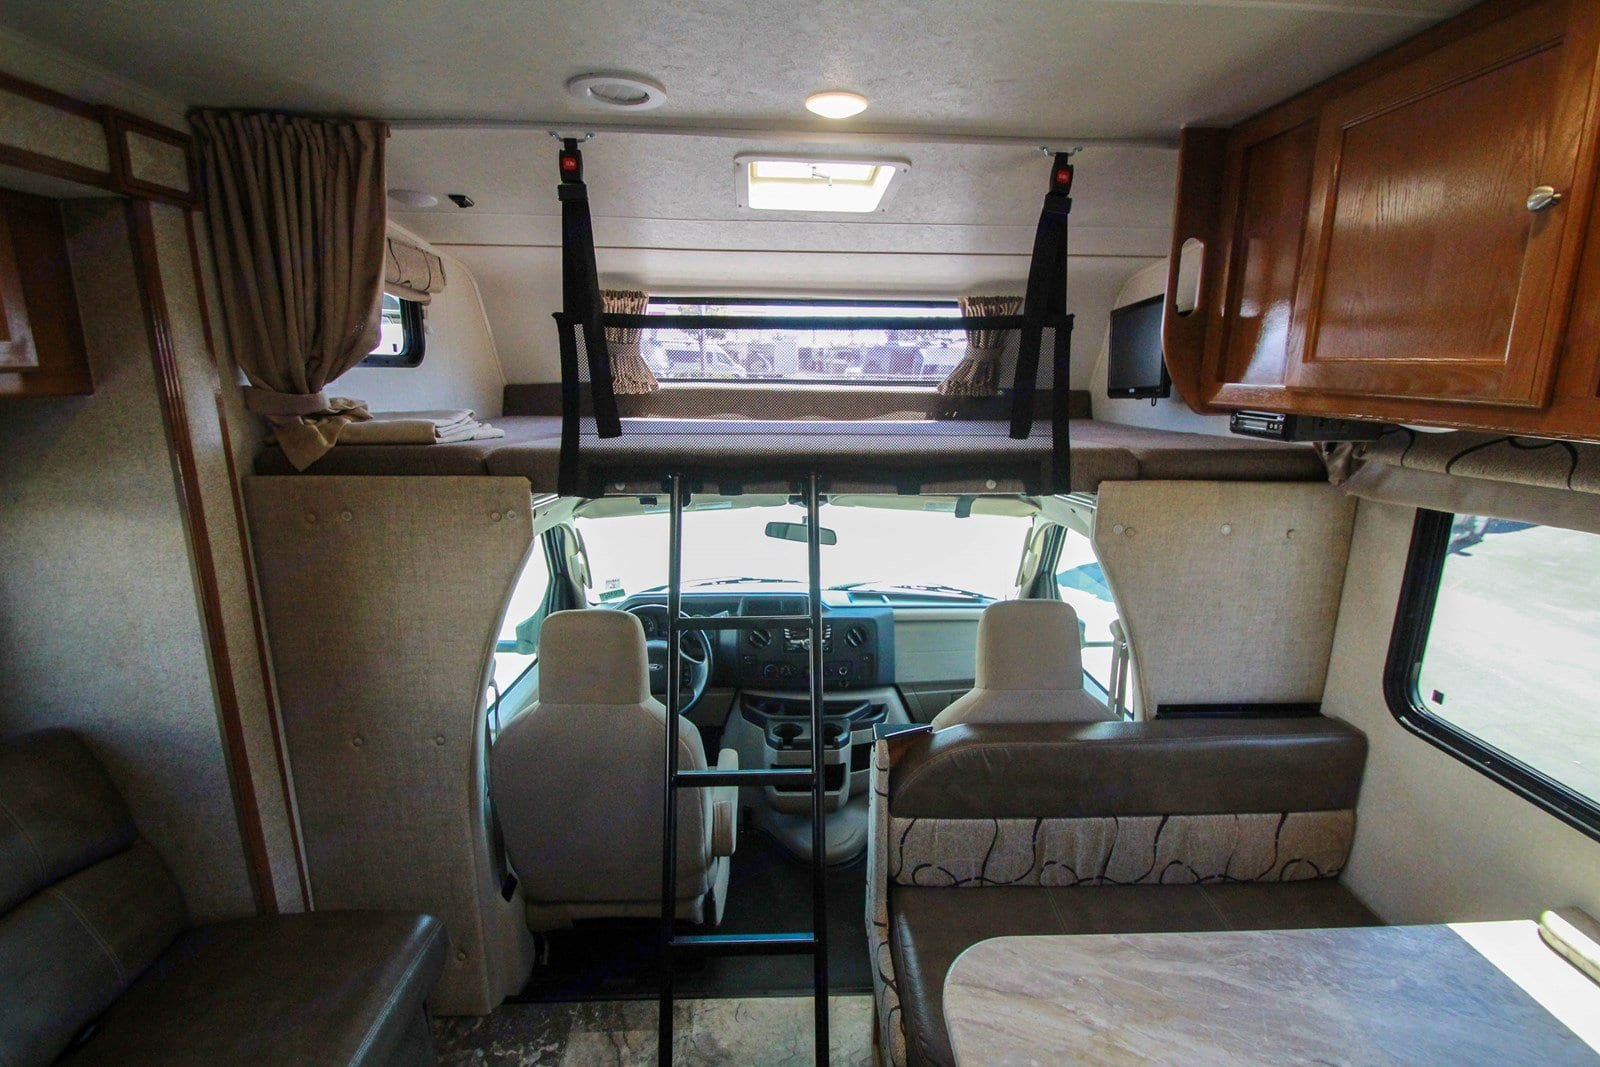 Bunk over cab sleeping area is larger than a queen bed, with safety net for those that toss and turn in their sleep (ladder for access not shown). Part of mattress can be removed for extra headroom while driving.. Coachmen Leprechaun 2019